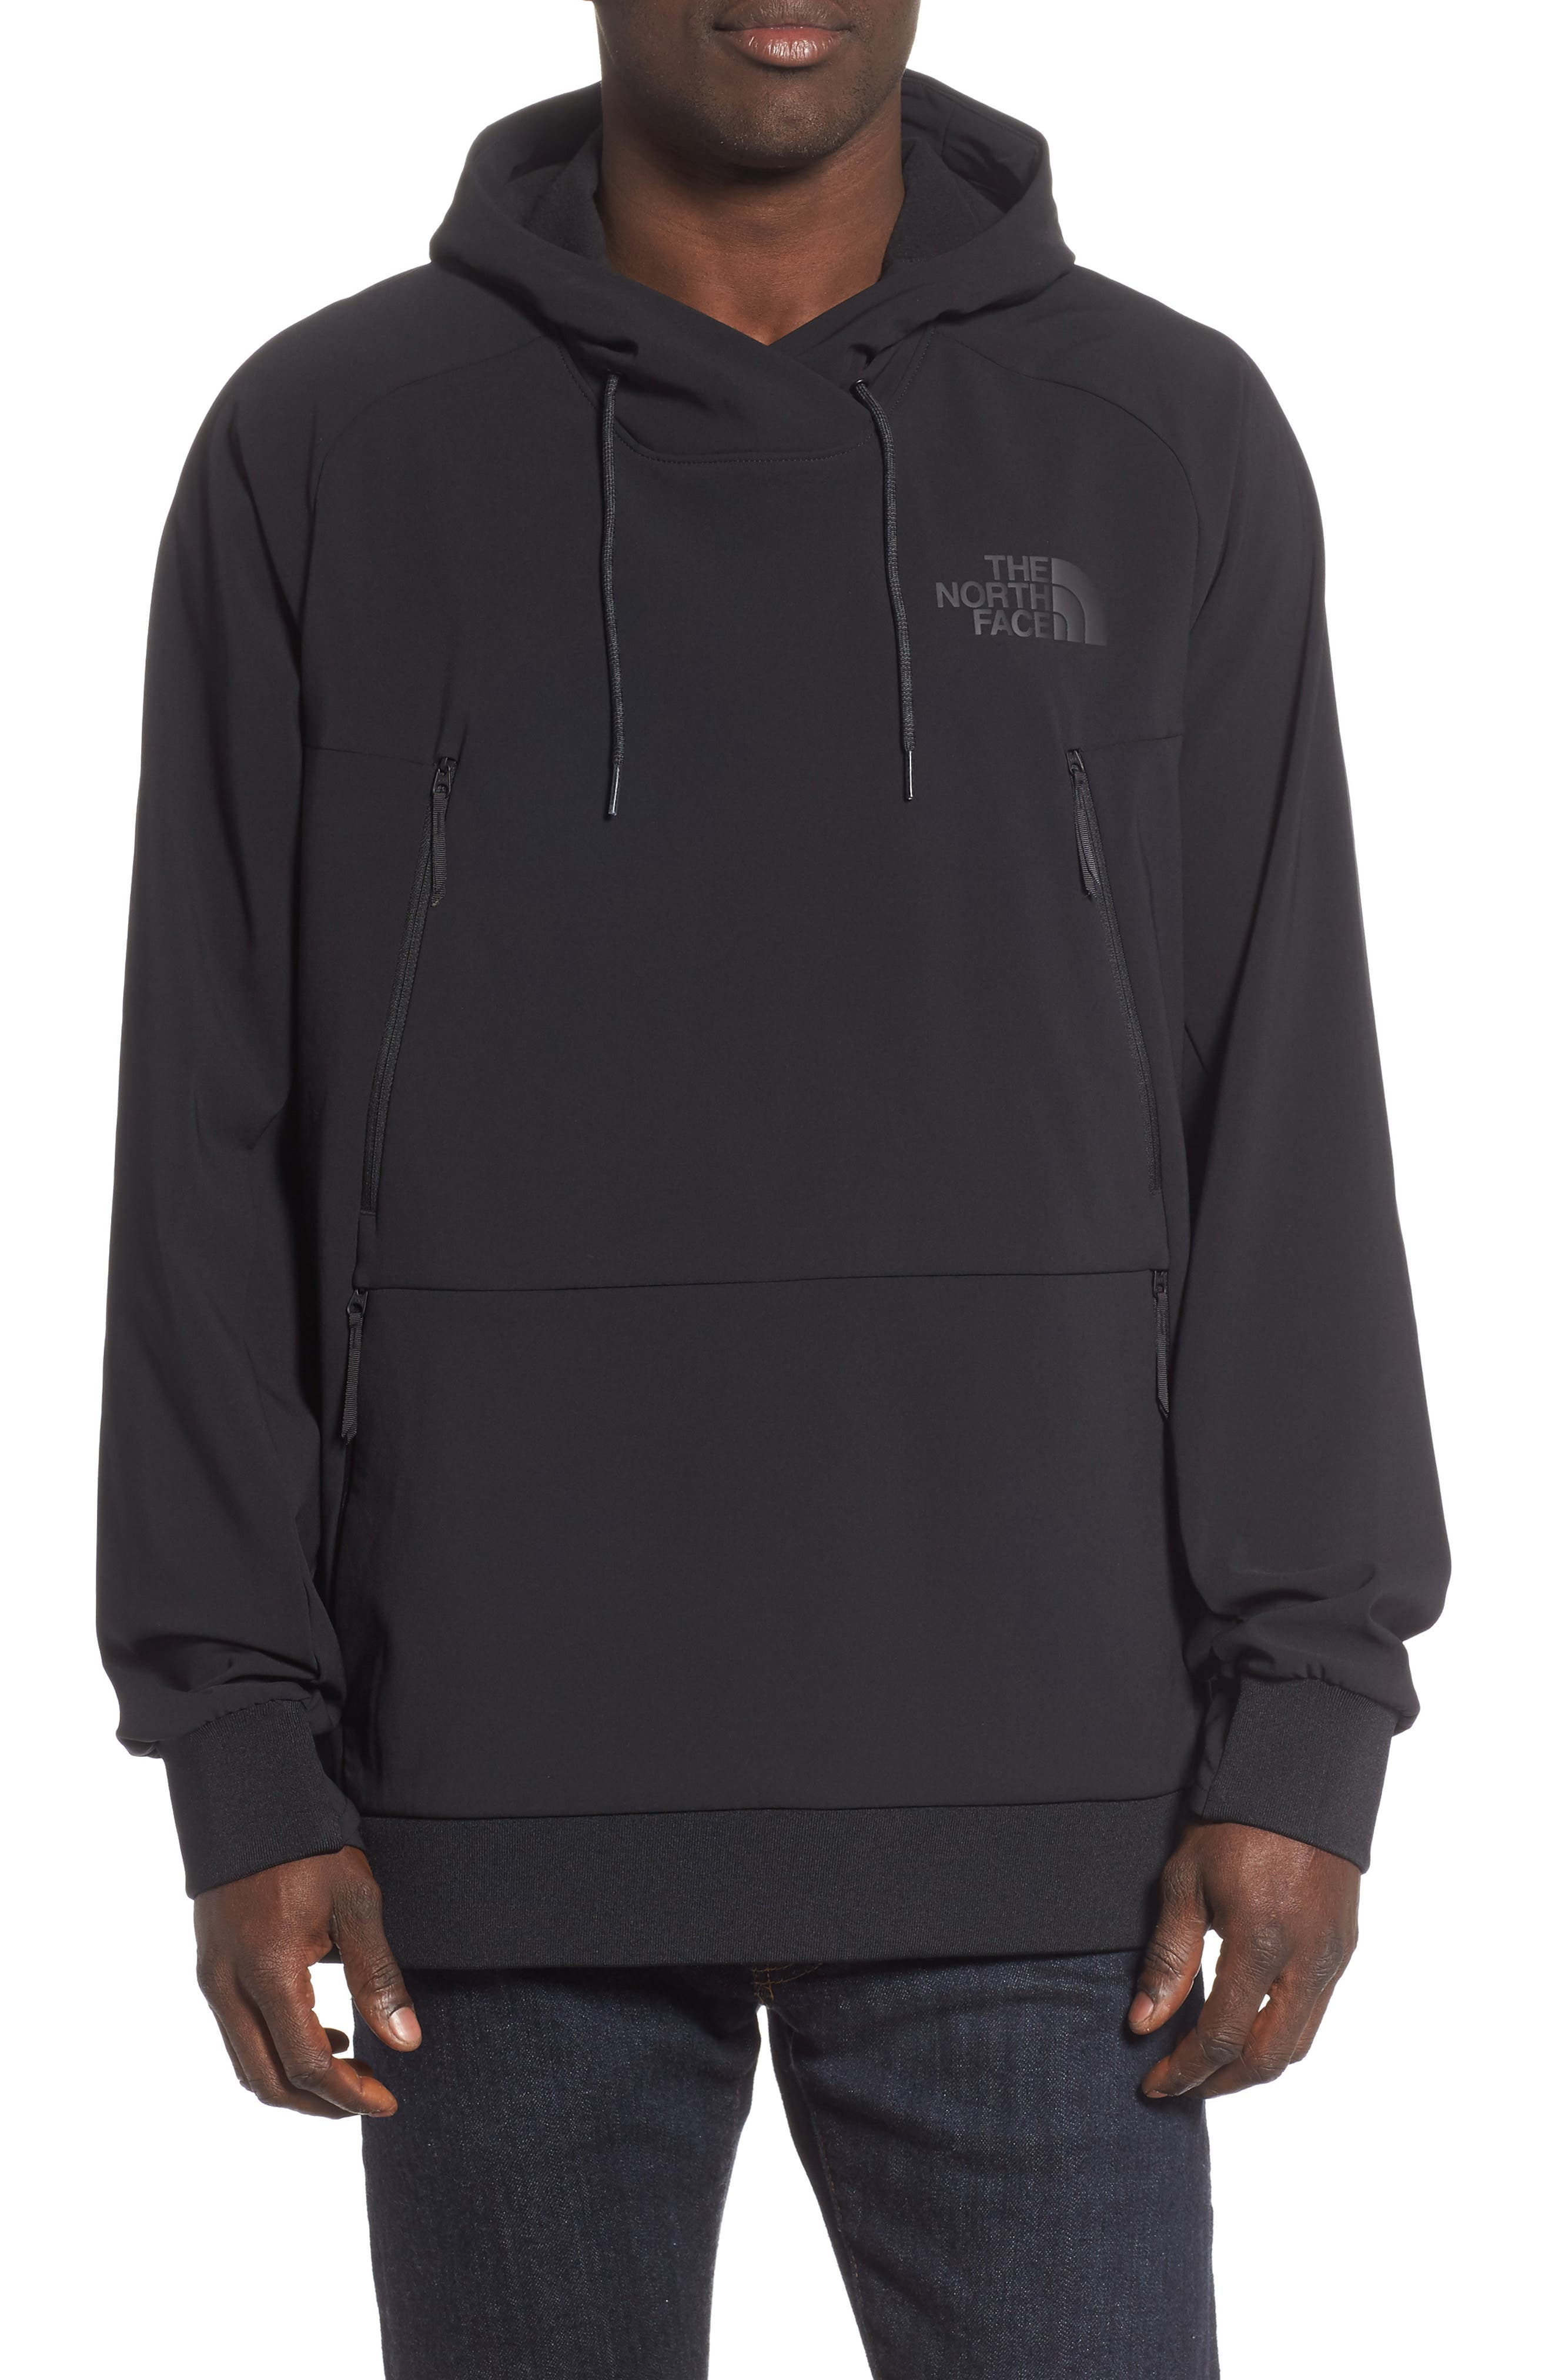 THE NORTH FACE, Tekno Pullover Hoodie, Main thumbnail 1, color, 001